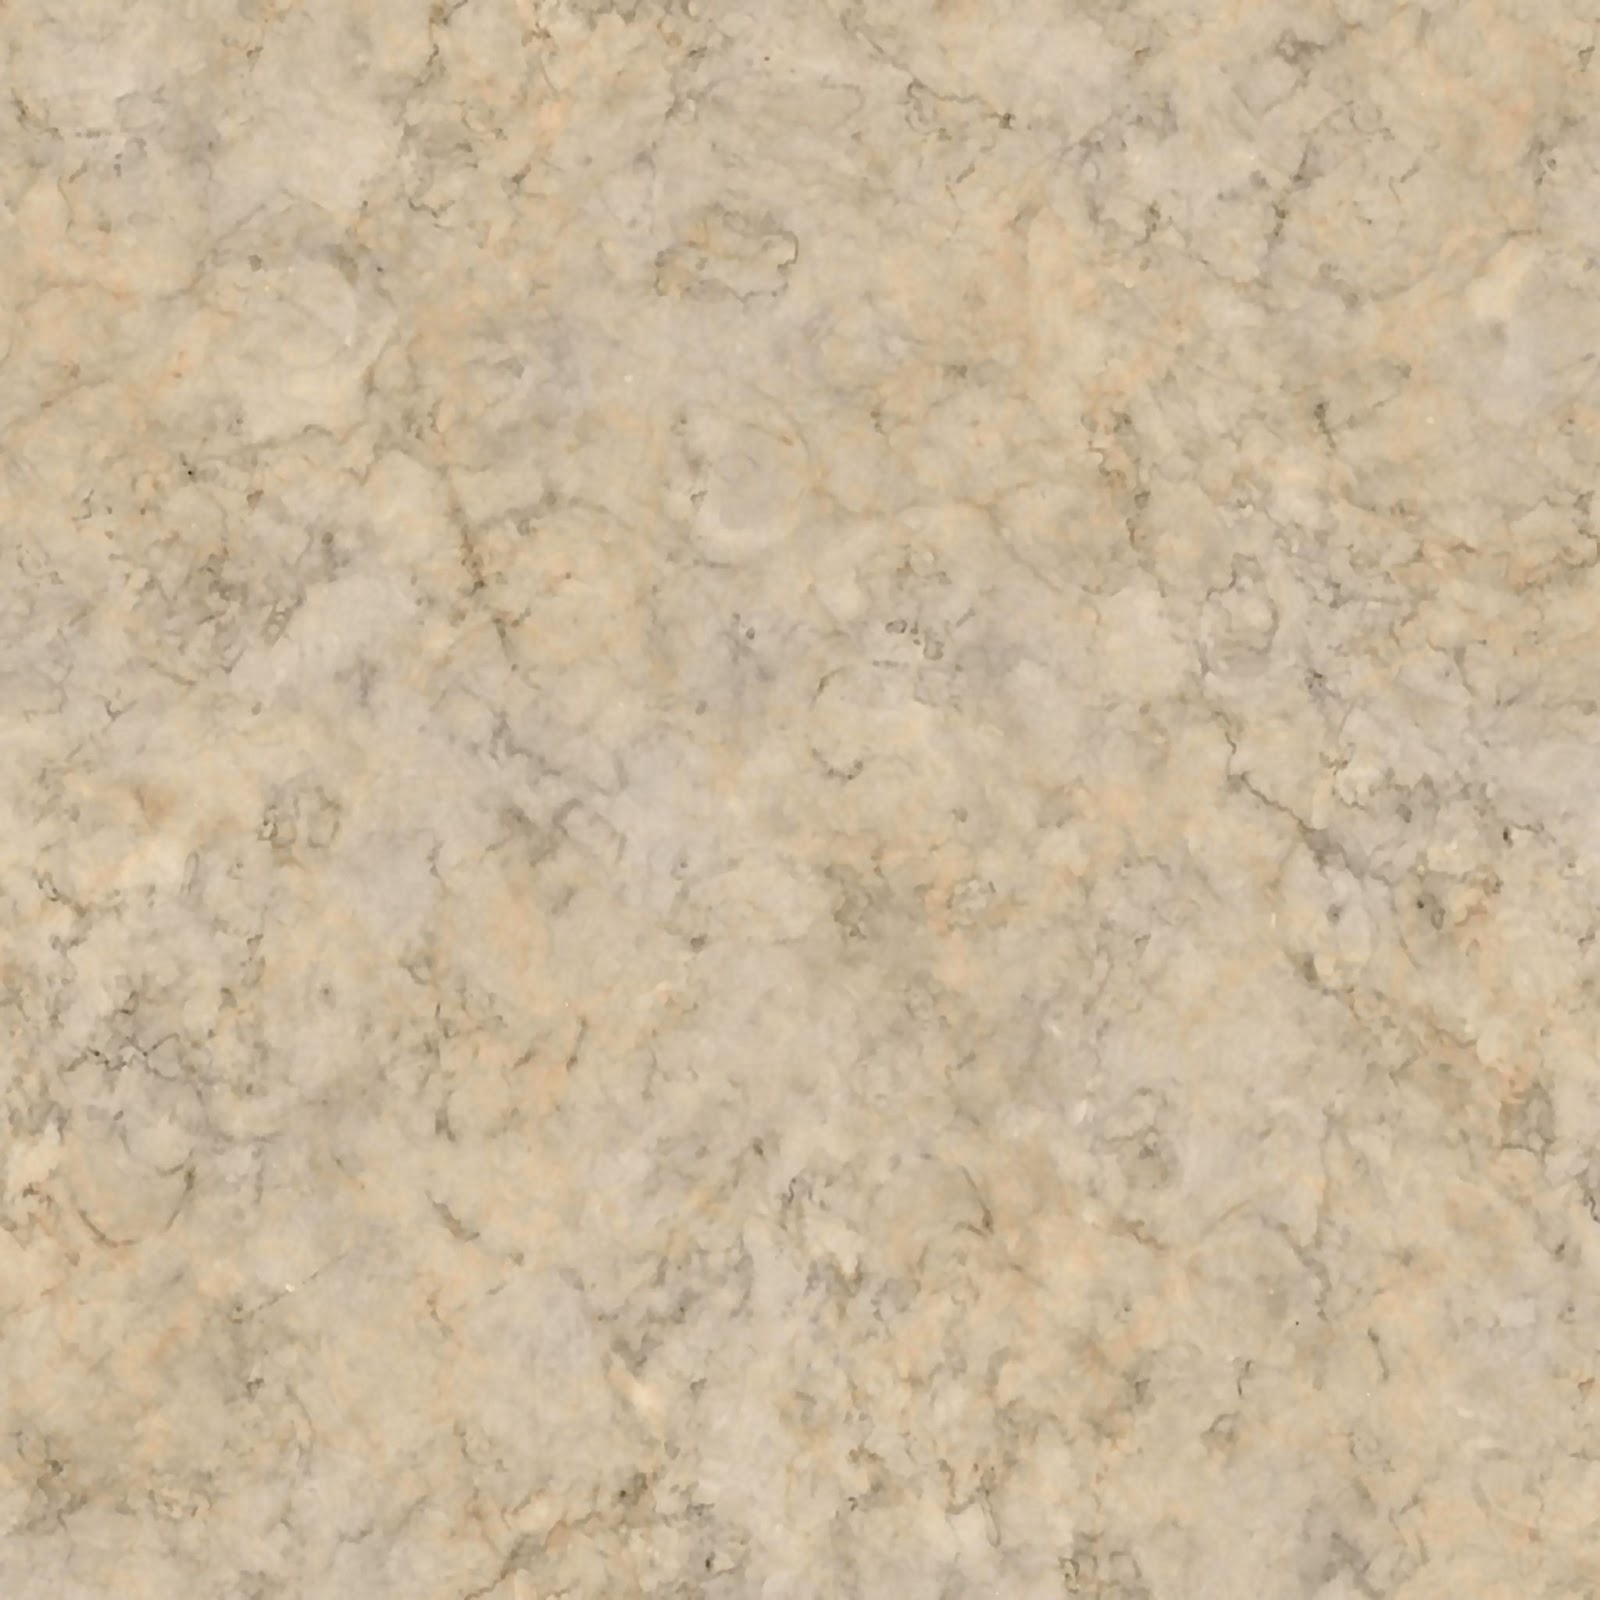 brown tile texture. Cream Marble Texture High Resolution Seamless Textures  Free Marble